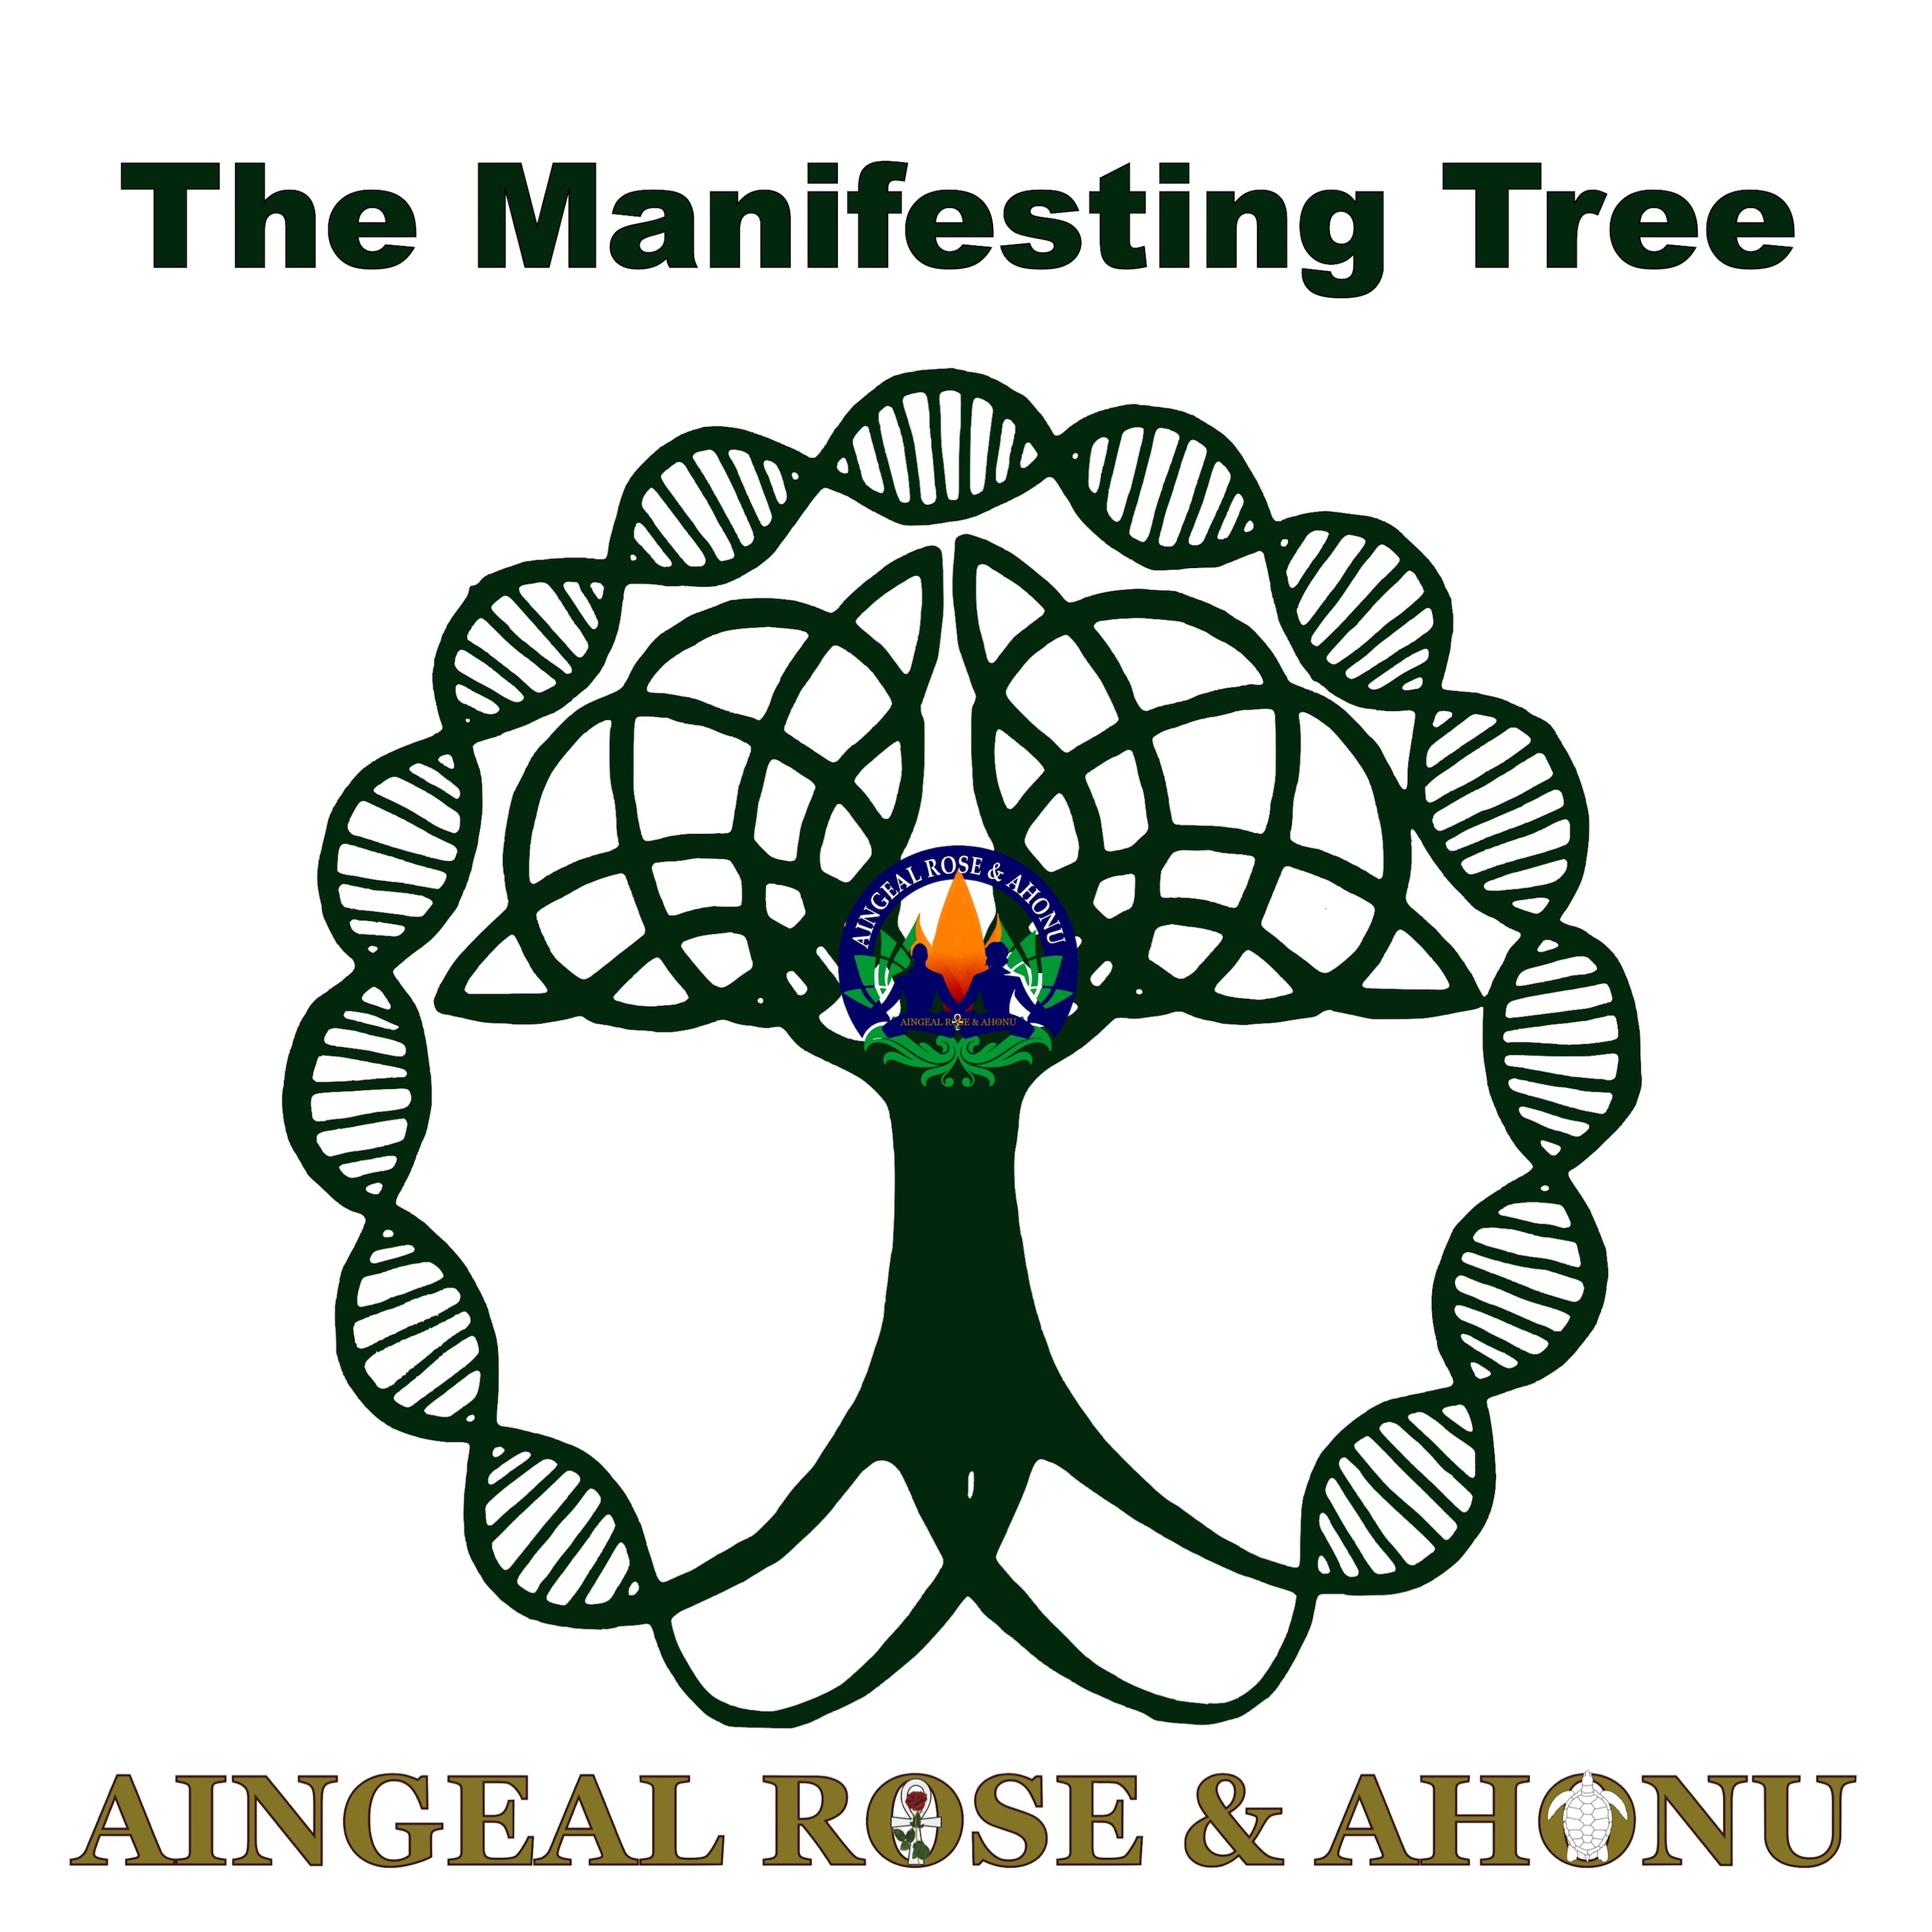 292: How To Use A Manifesting Tree